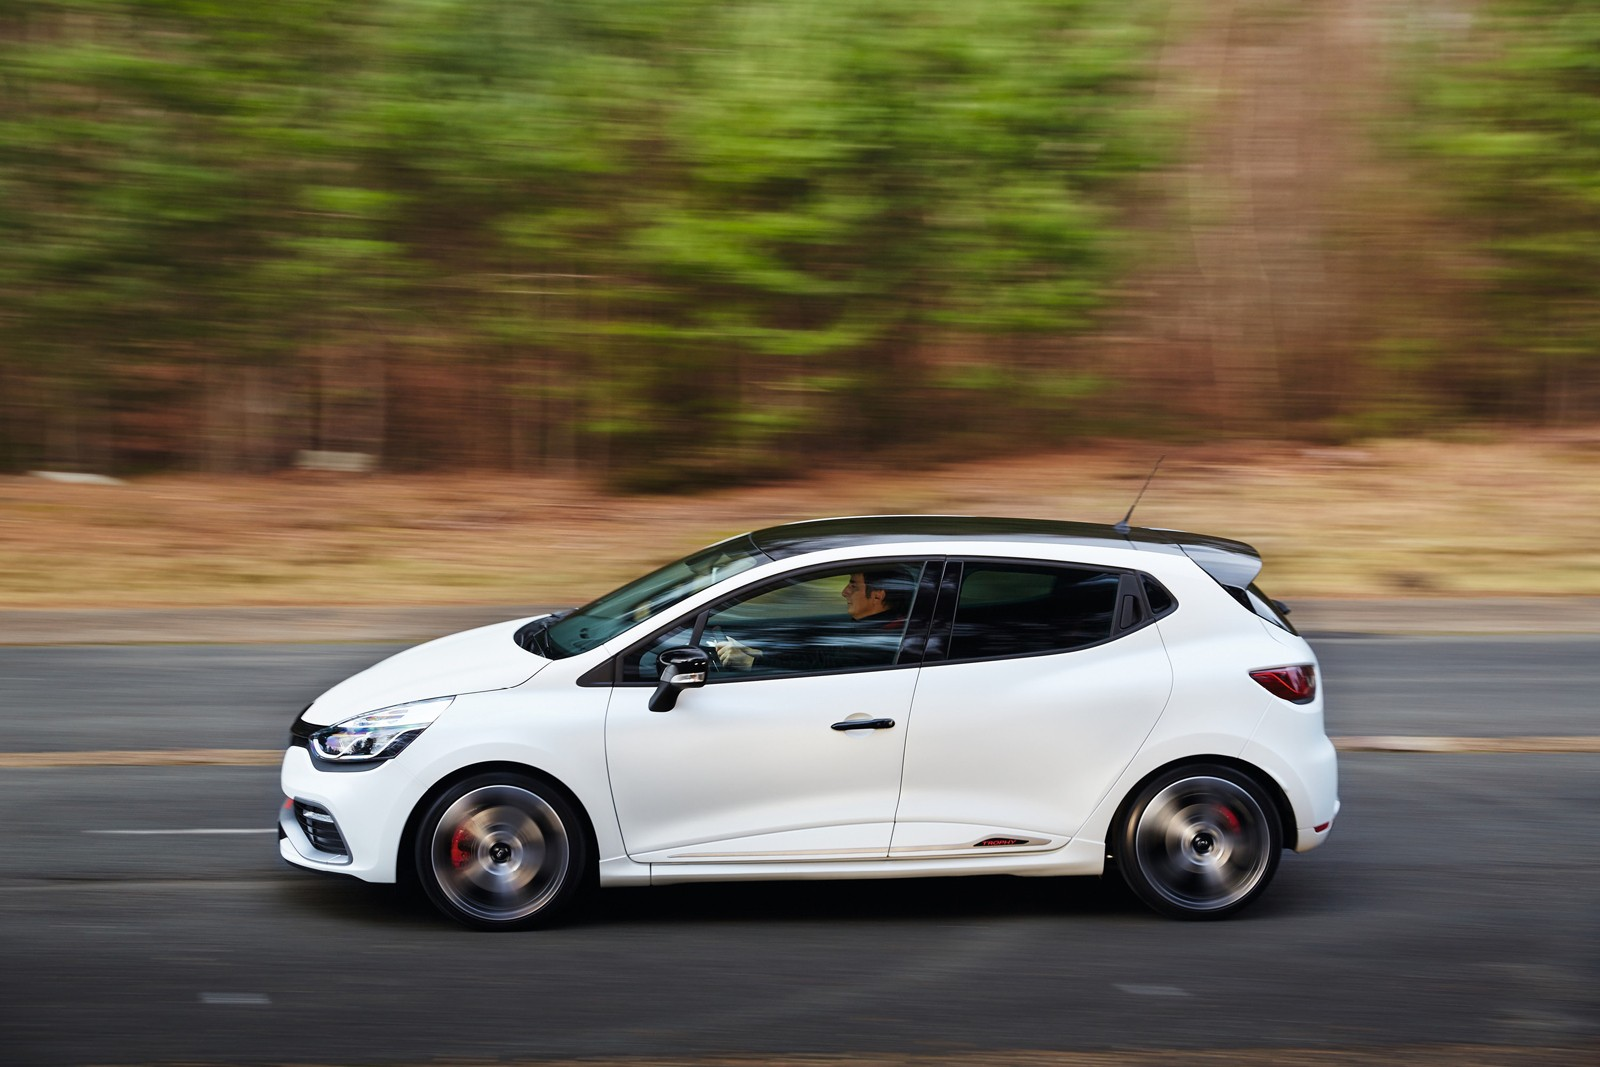 renault clio rs 220 trophy laps nurburgring in 8 23. Black Bedroom Furniture Sets. Home Design Ideas